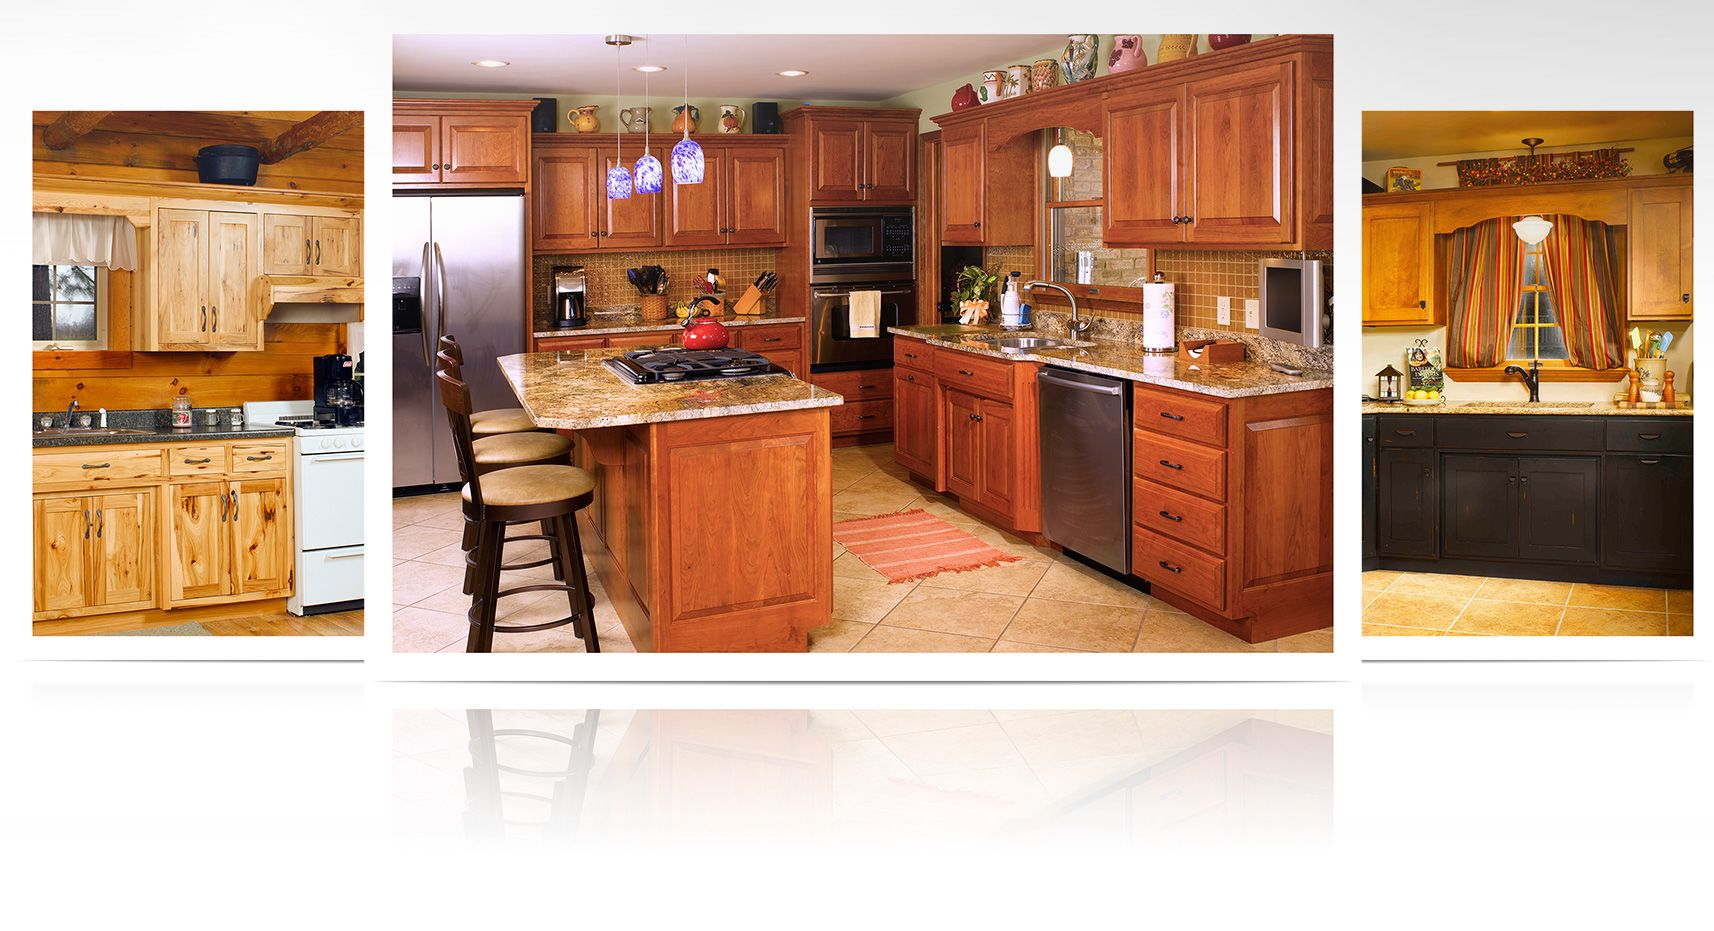 Amish Made Kitchen Cabinets 10 Great Reasons To Consider Amish Made Custom Cabinetry Cabinet Kitchen Cabinets Dream Kitchen